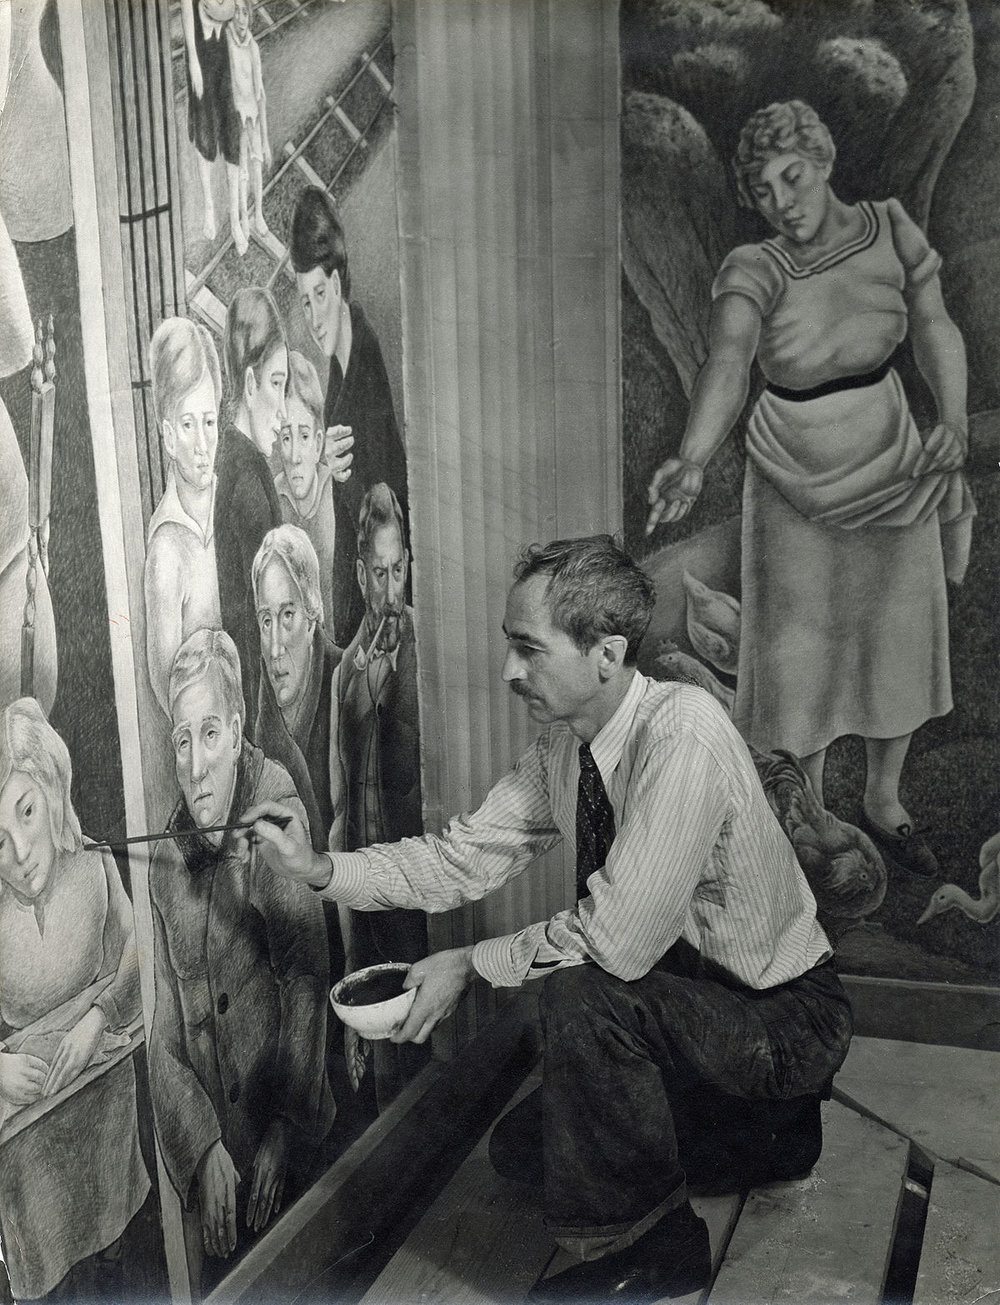 Photograph of George Biddle at Work, 1930s